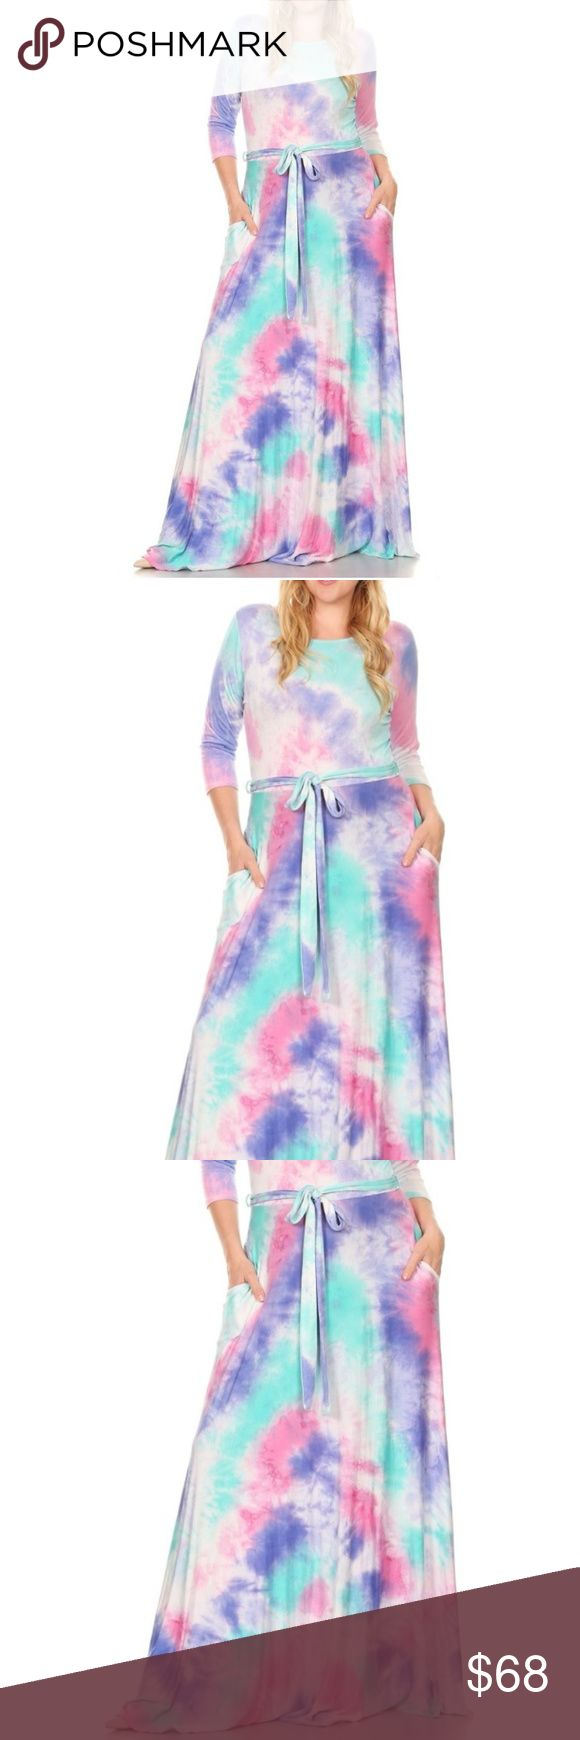 "Plus Tie Dye Aqua Blue Pink Jersey Maxi Dress Tie Dye Maxi Dress. Boat neckline and 3/4 sleeves, sash belt at elastic waist and a sweep maxi skirt with side pockets. Made of soft stretchy rayon jersey fabric. Made in USA. Please note that each dress has a unique tie dye pattern that may differ from the pictured dress. Brand New.  Model in pictures is 5'11"" and her measurements are 34C x 33 x 41  Size 1X 14/16: Bust 36-41 Waist 32-35 Hips 40-43 Size 2X 18/20: Bust 42-45 Waist 36-39 Hips 44-47…"